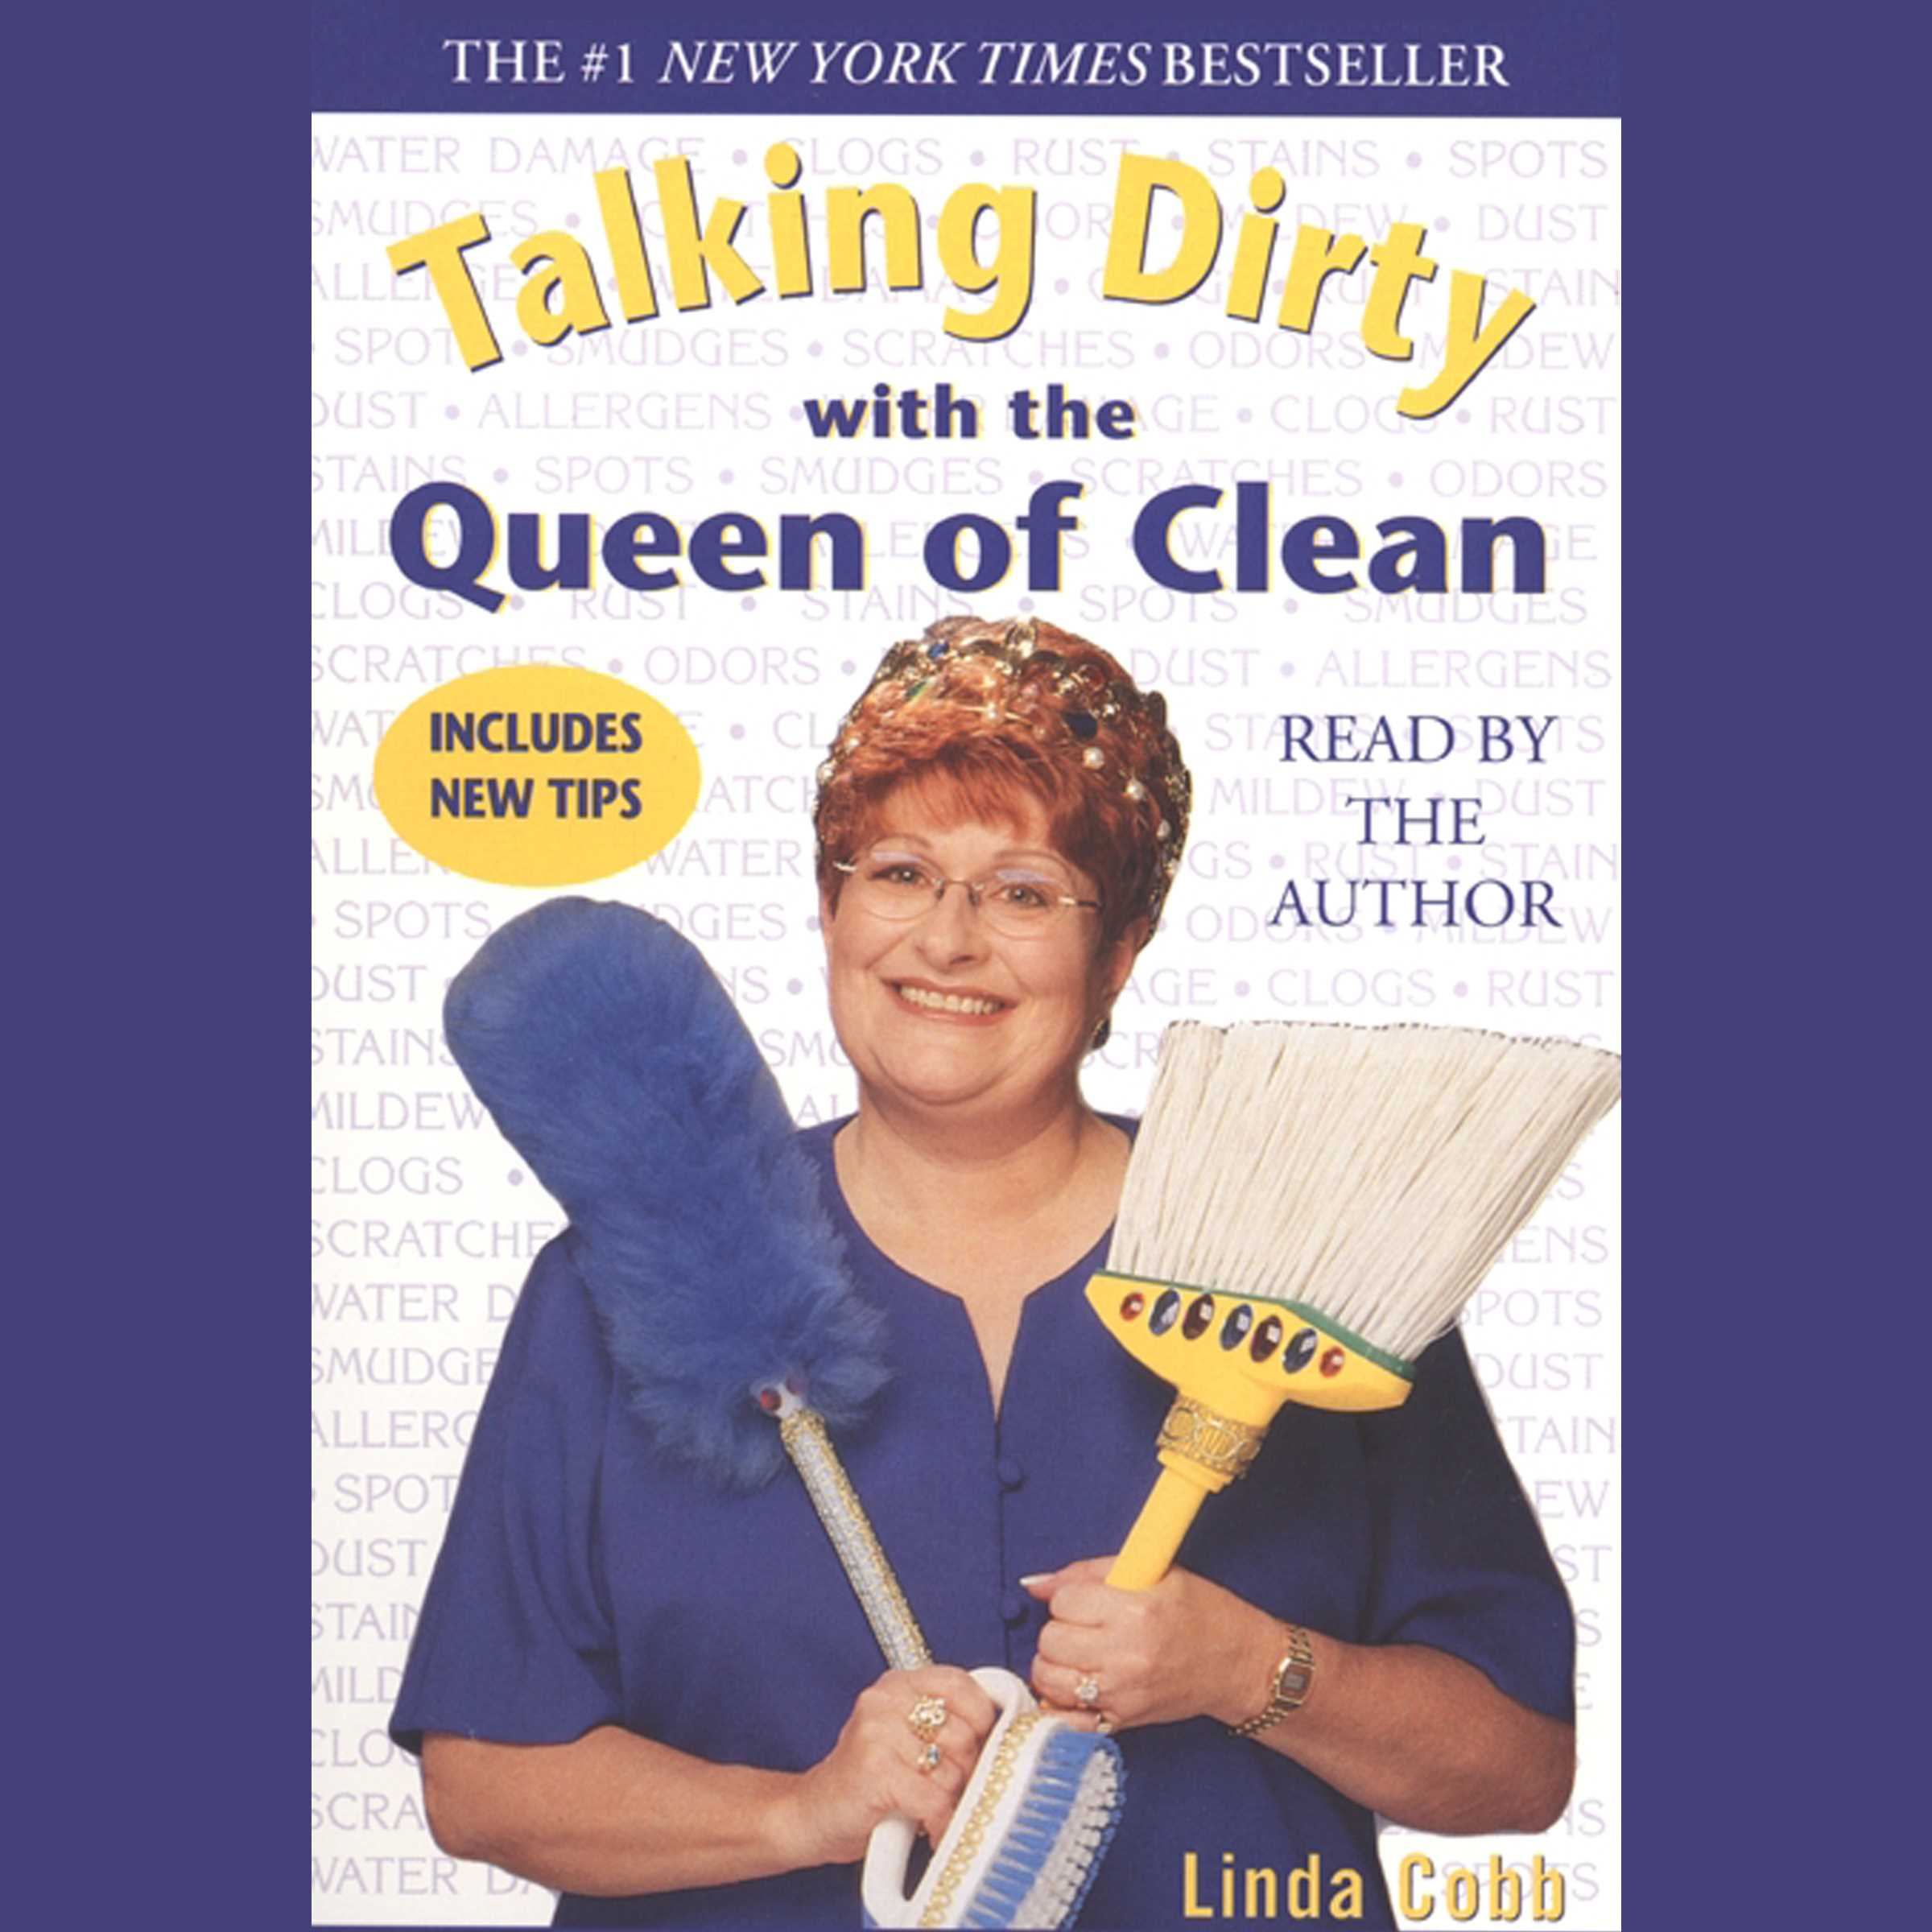 Talking-dirty-with-the-queen-of-clean-9780743519502_hr